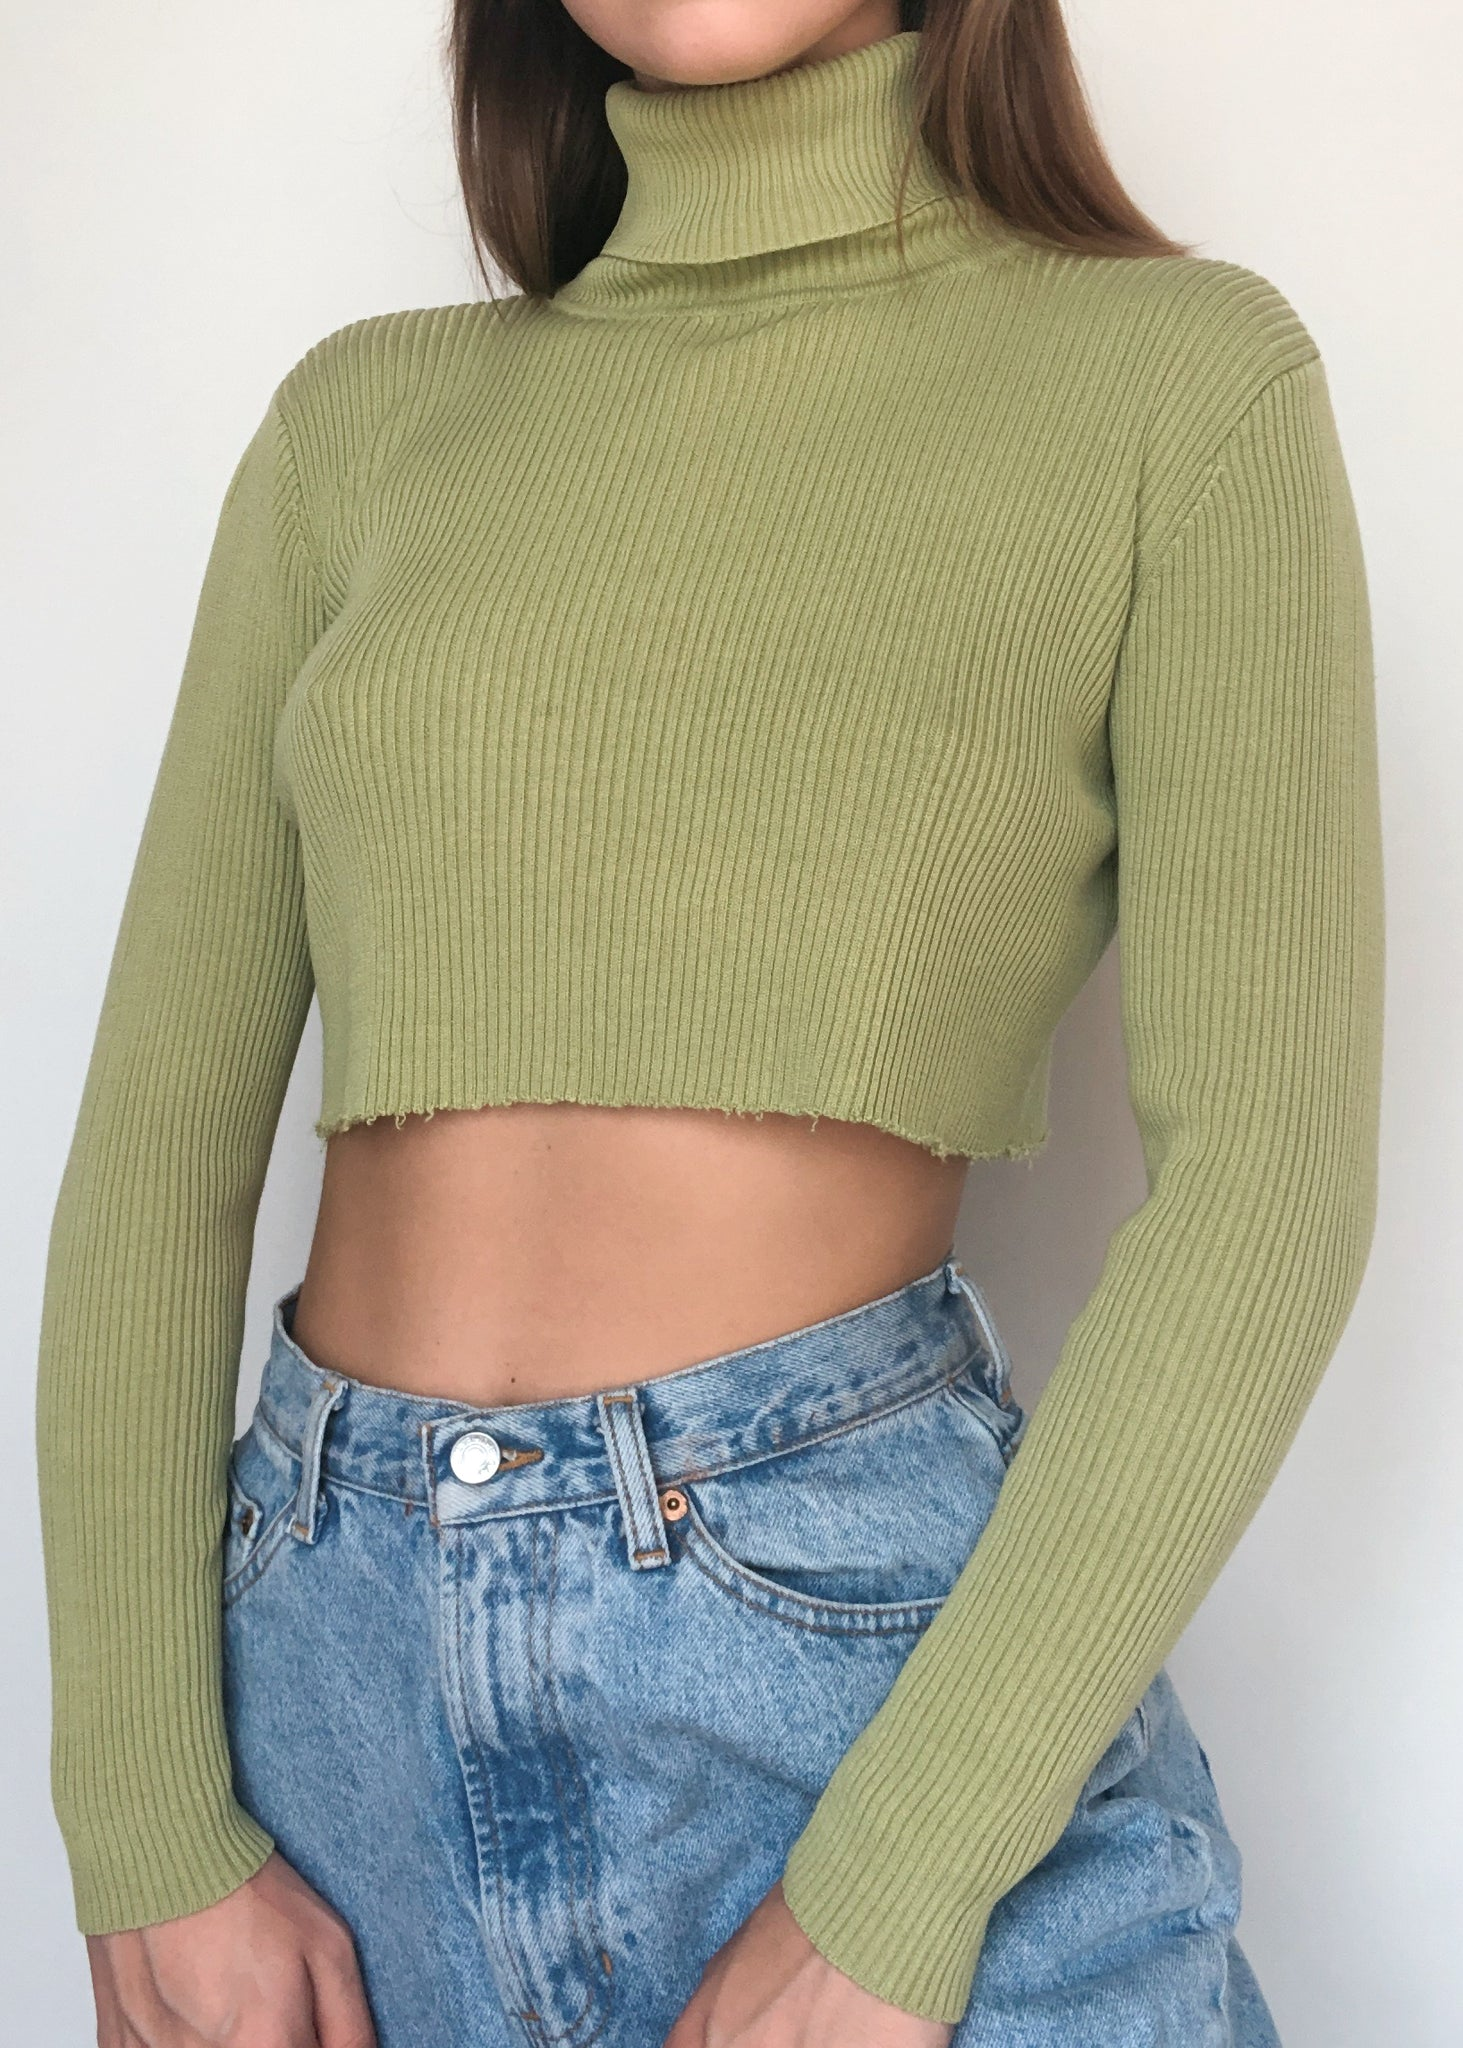 Avocodo Turtleneck